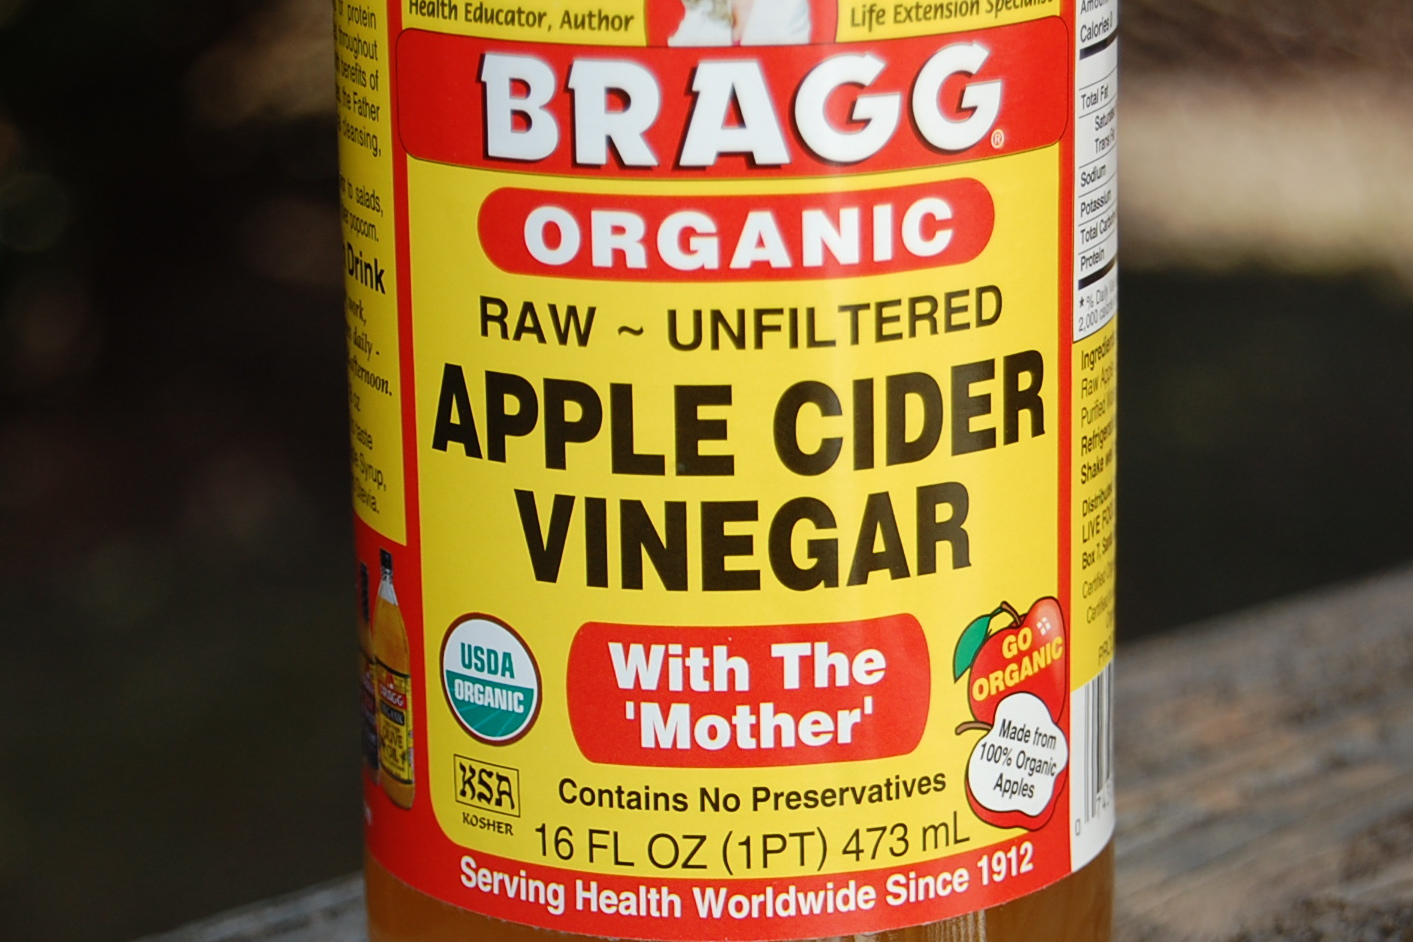 Apple cider vinegar with mother cures